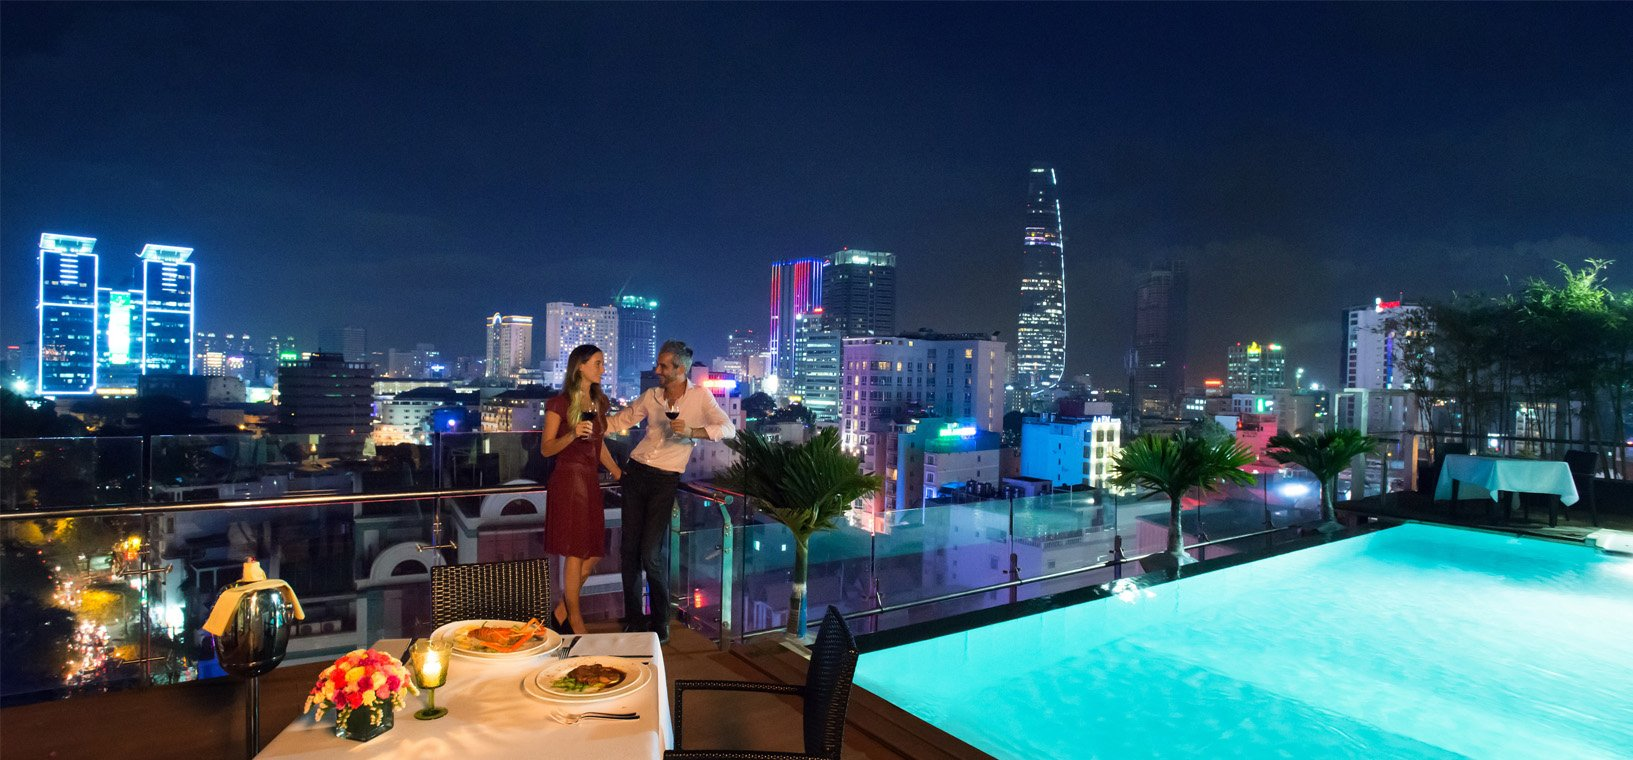 Find Hotels in Ho Chi Minh City, Vietnam - Agoda